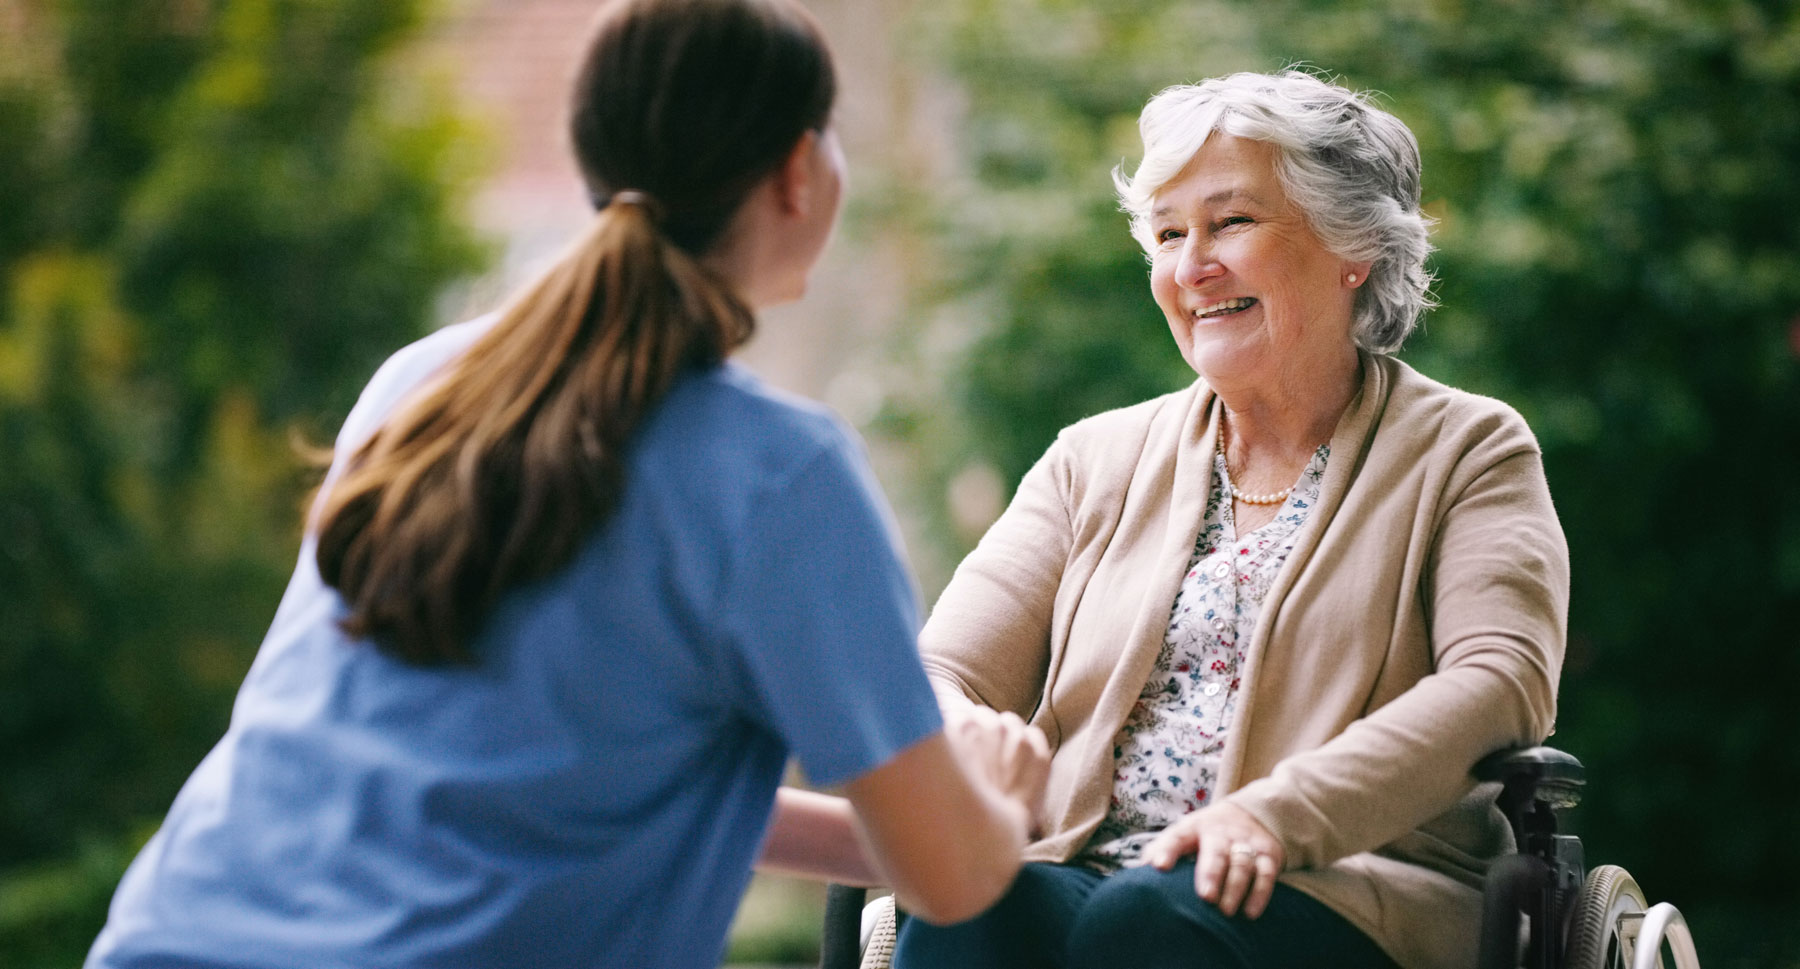 Get Peace of Mind with a Skilled Nurse